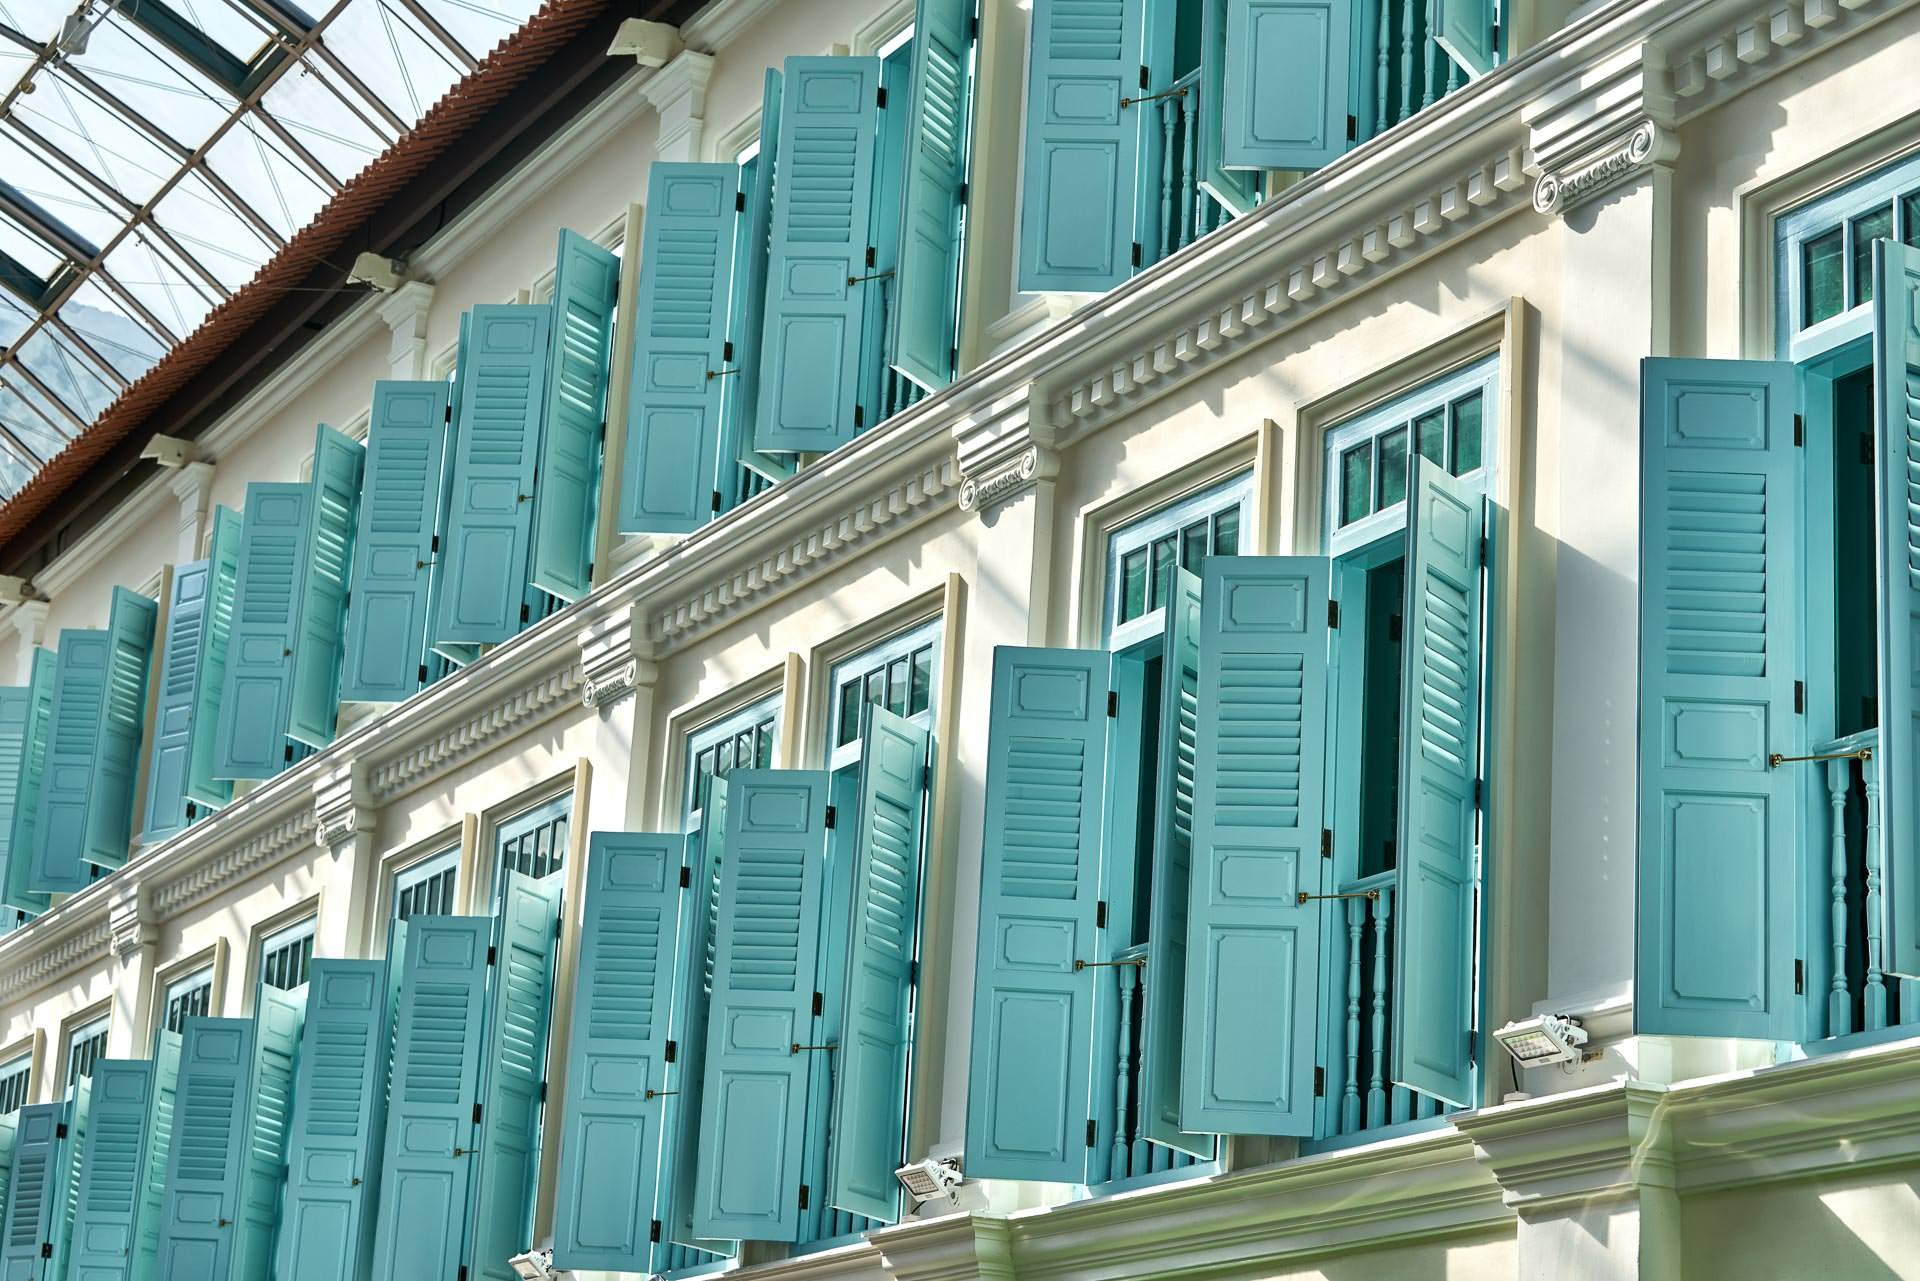 architectural photography focusing on blue shutters at bugis junction mall in singapore